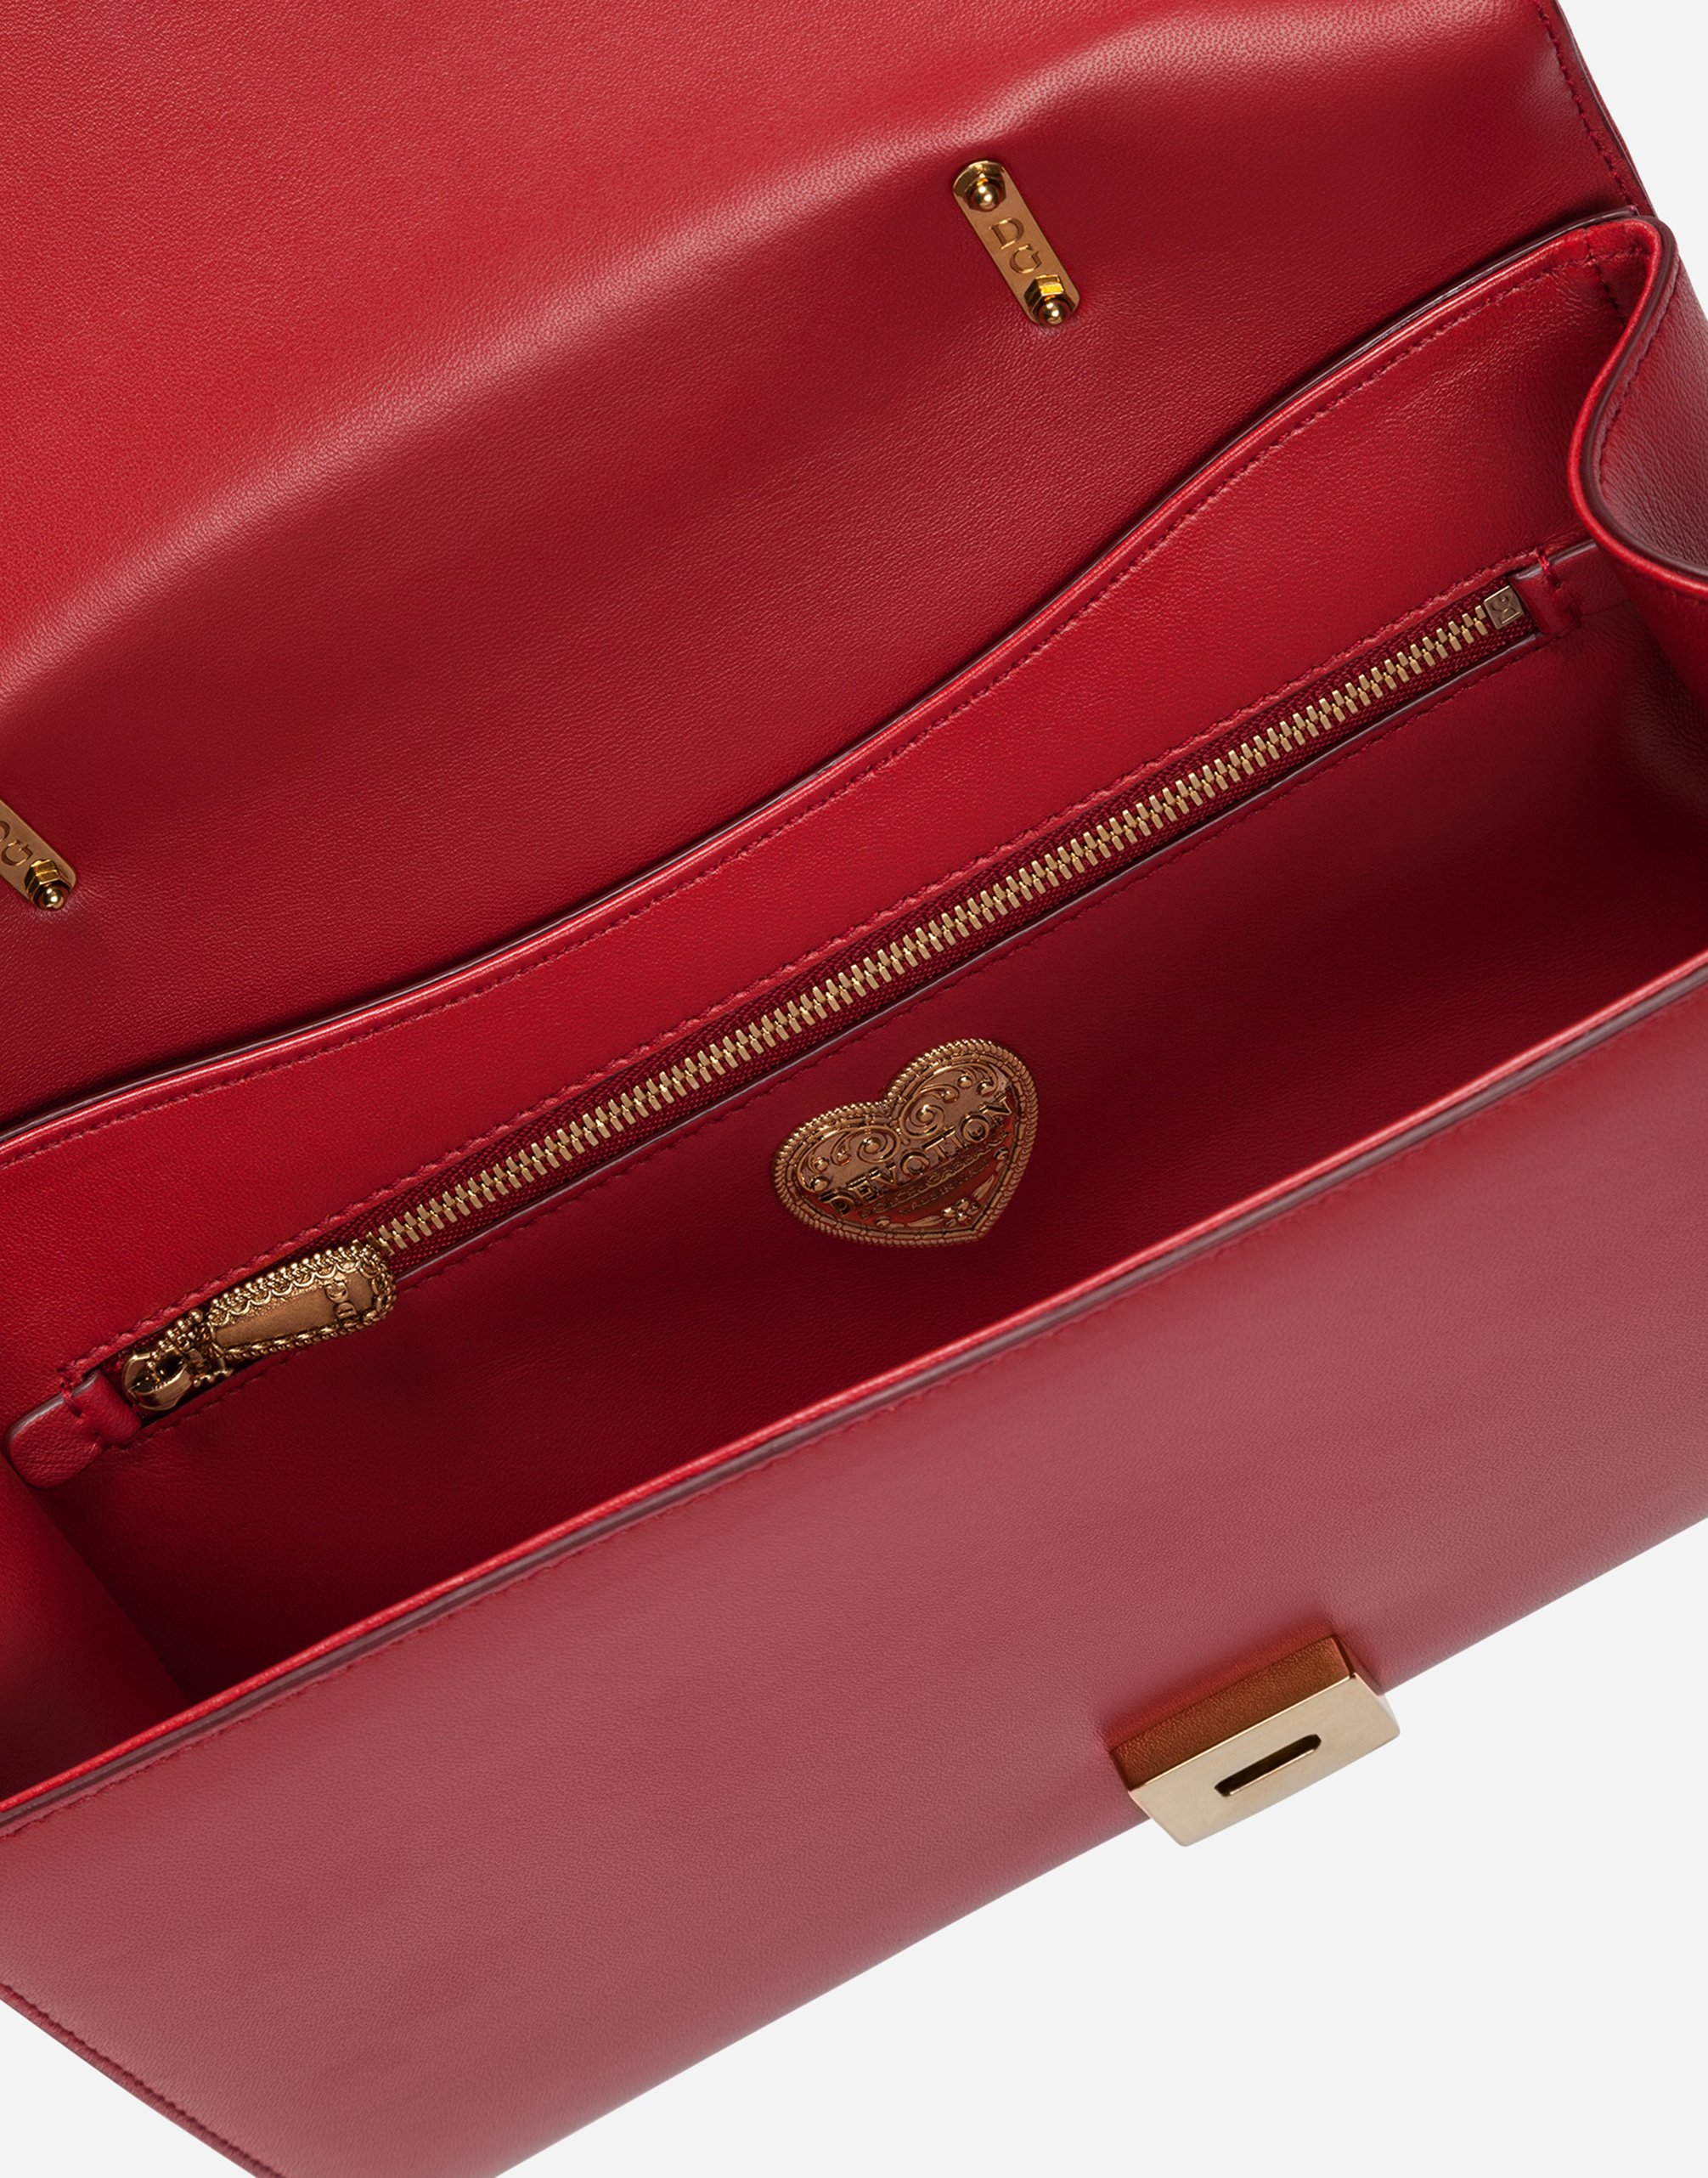 Dolce&Gabbana LARGE DEVOTION BAG IN QUILTED NAPPA LEATHER